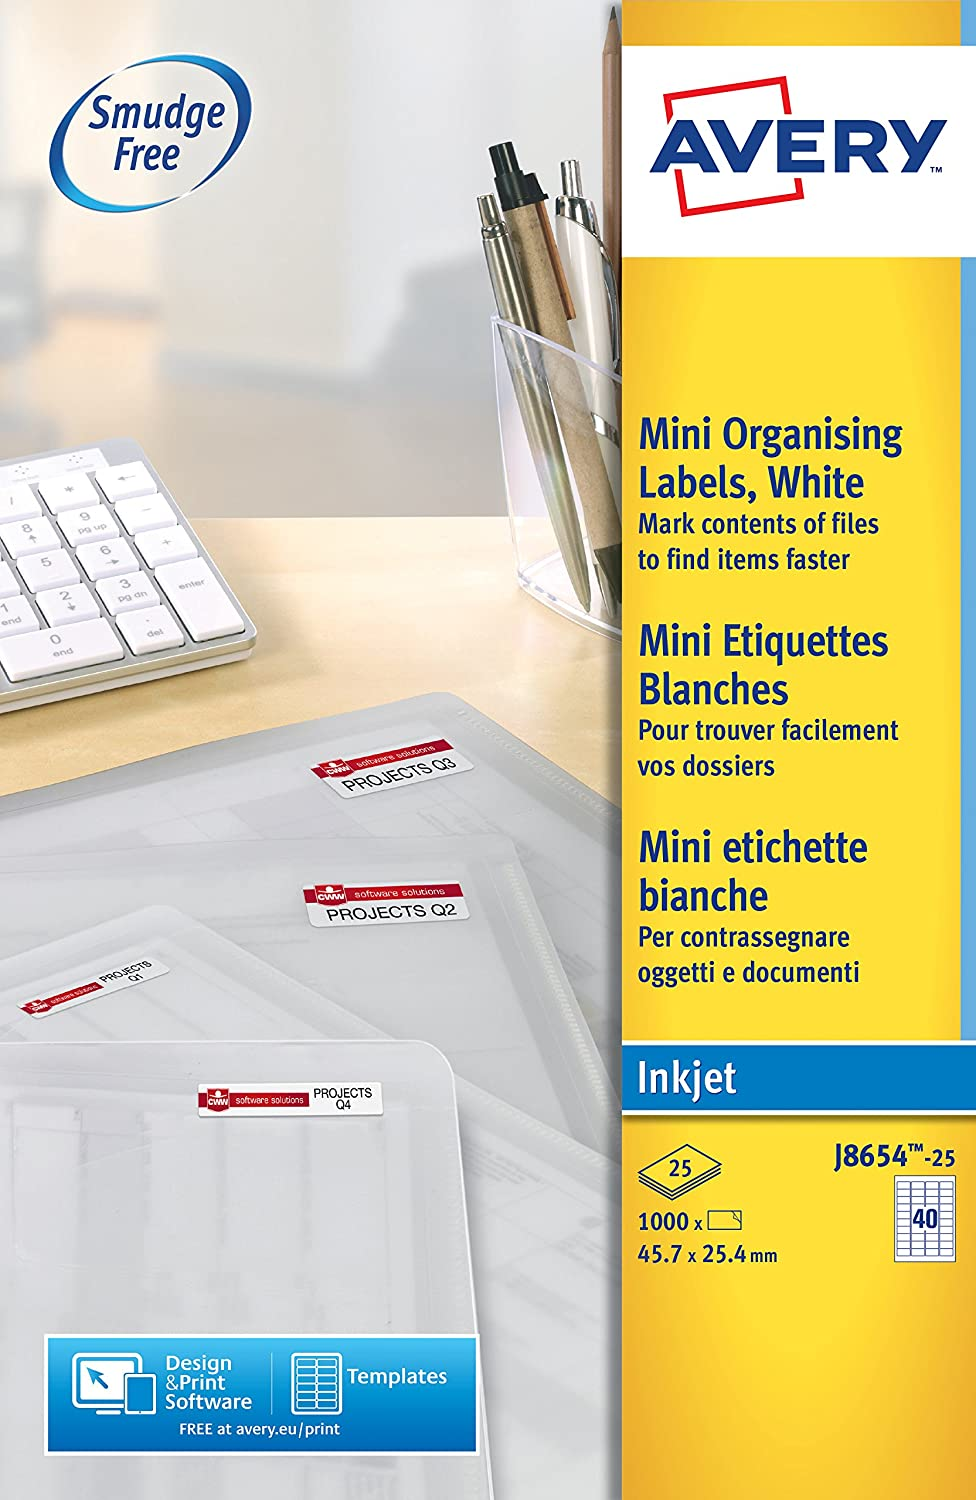 Avery Self Adhesive Address Mailing Labels 1000 labels Inkjet Printers J8654 40 Labels per A4 Sheet QuickDRY